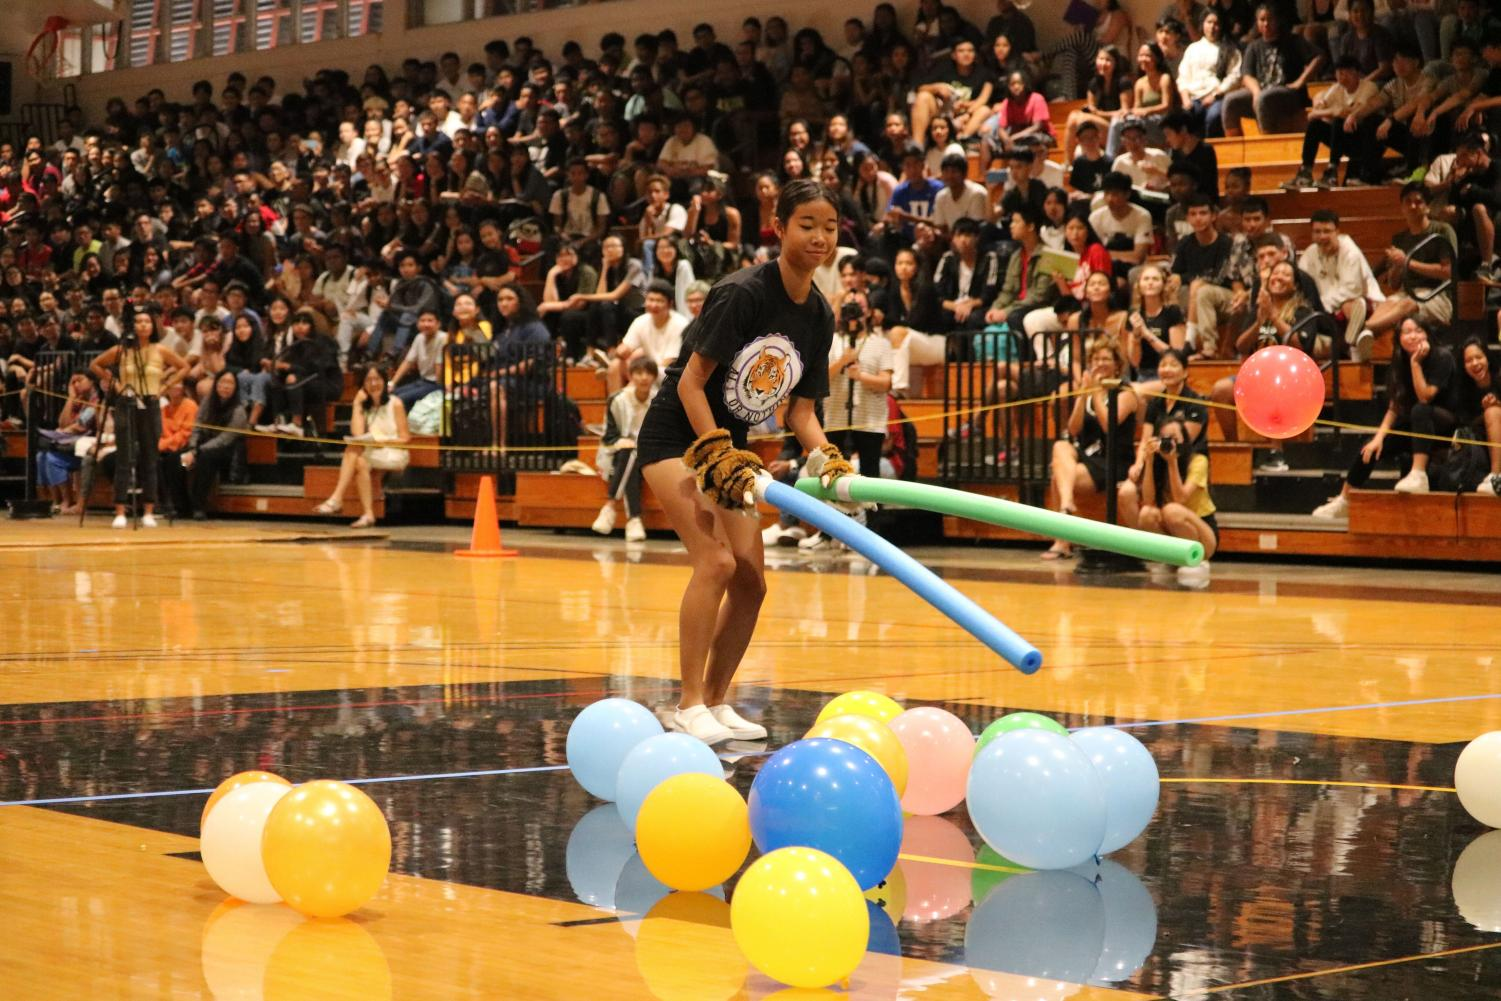 This+%22simple+game%22+required+students+and+teachers+to+carry+balloons+using+pool+noodles%2C+but+there+was+a+slight+twist+added.+Each+participant+had+to+wear+a+part+of+the+Tiger+Mascot.+Here%2C+the+Seniors+representative+is+wearing+the+paws.%0Aphoto+by+Sabrina+Williams